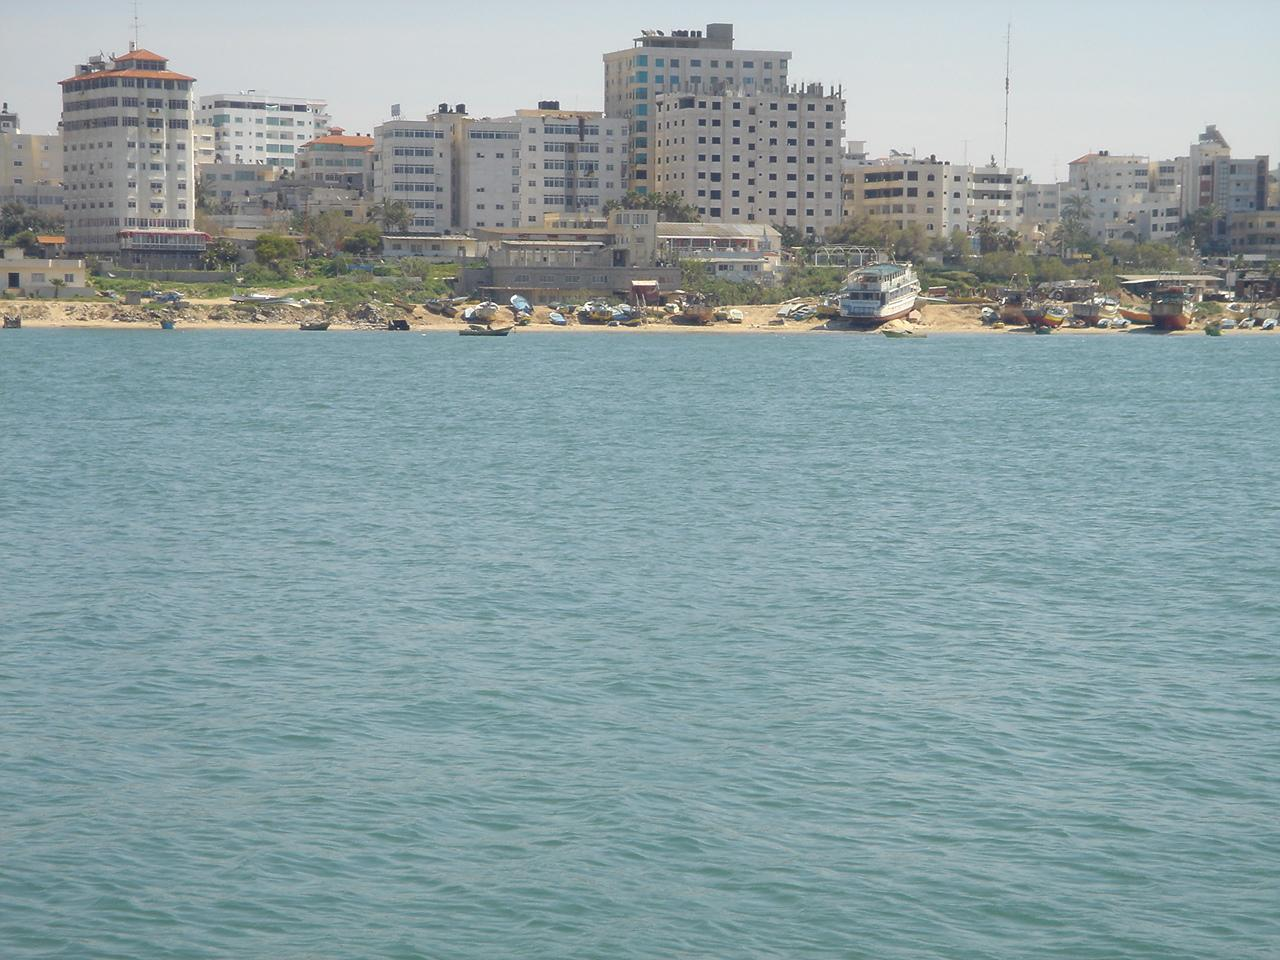 Gaza - غزة هاشم : General view #8 from the sea